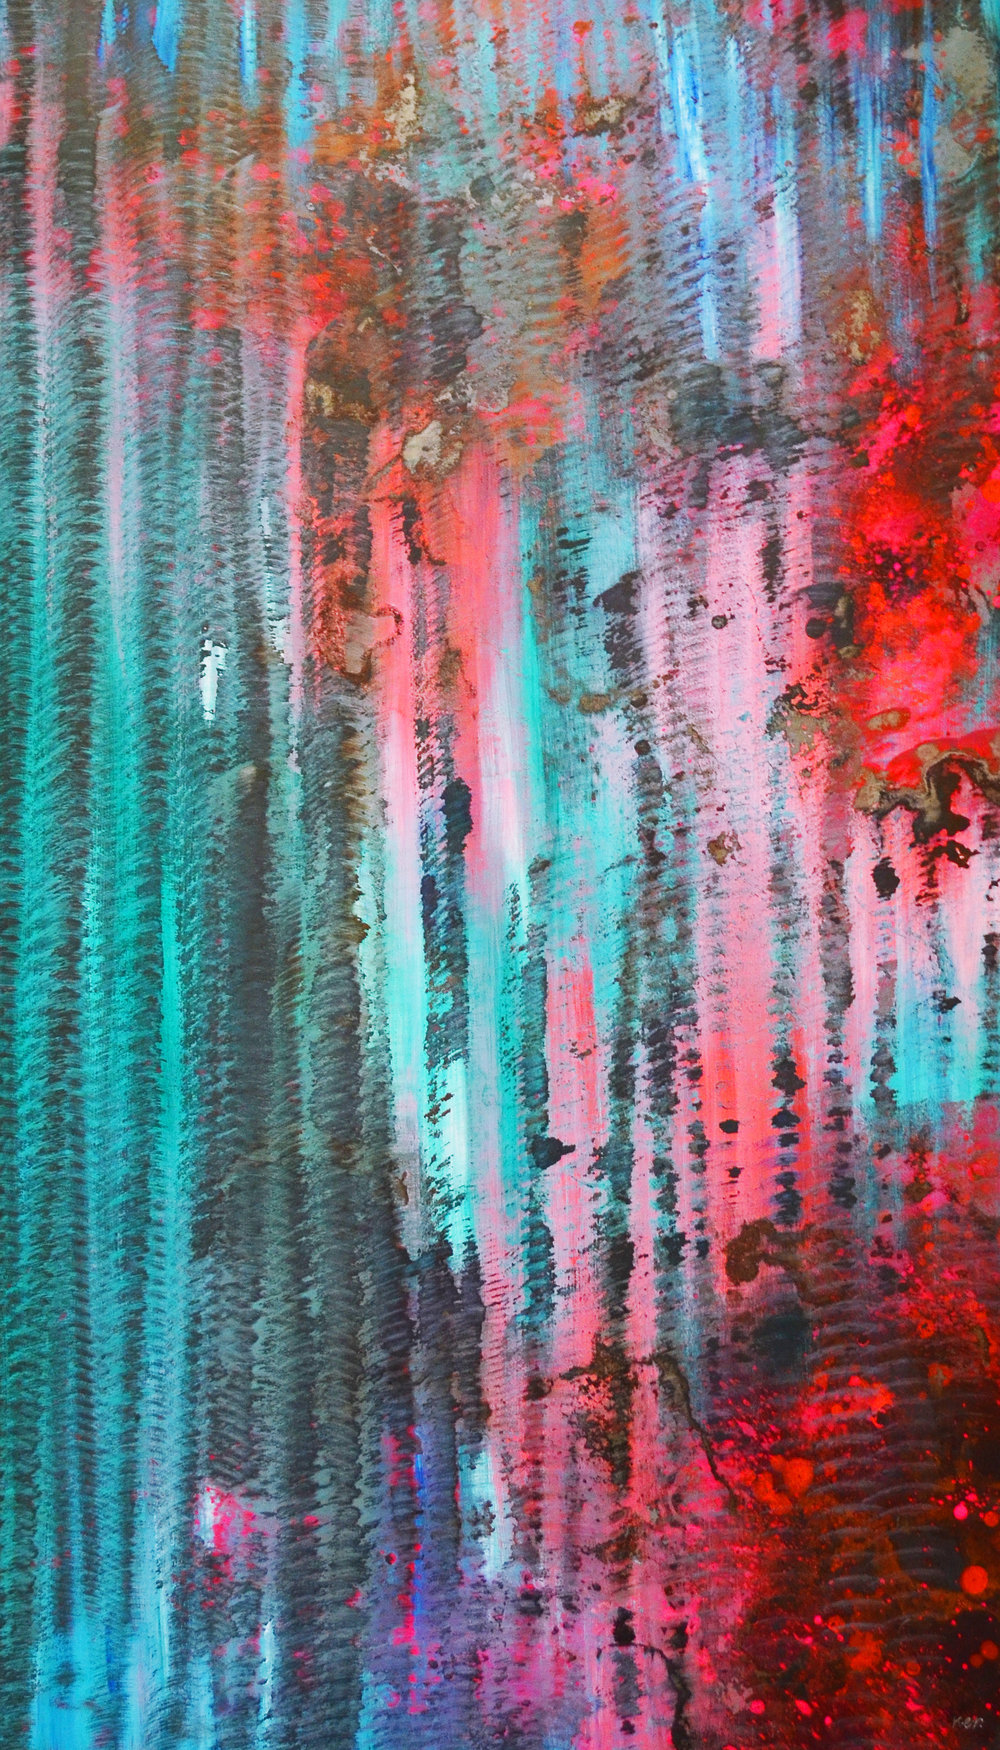 Pink and Turquoise No.1